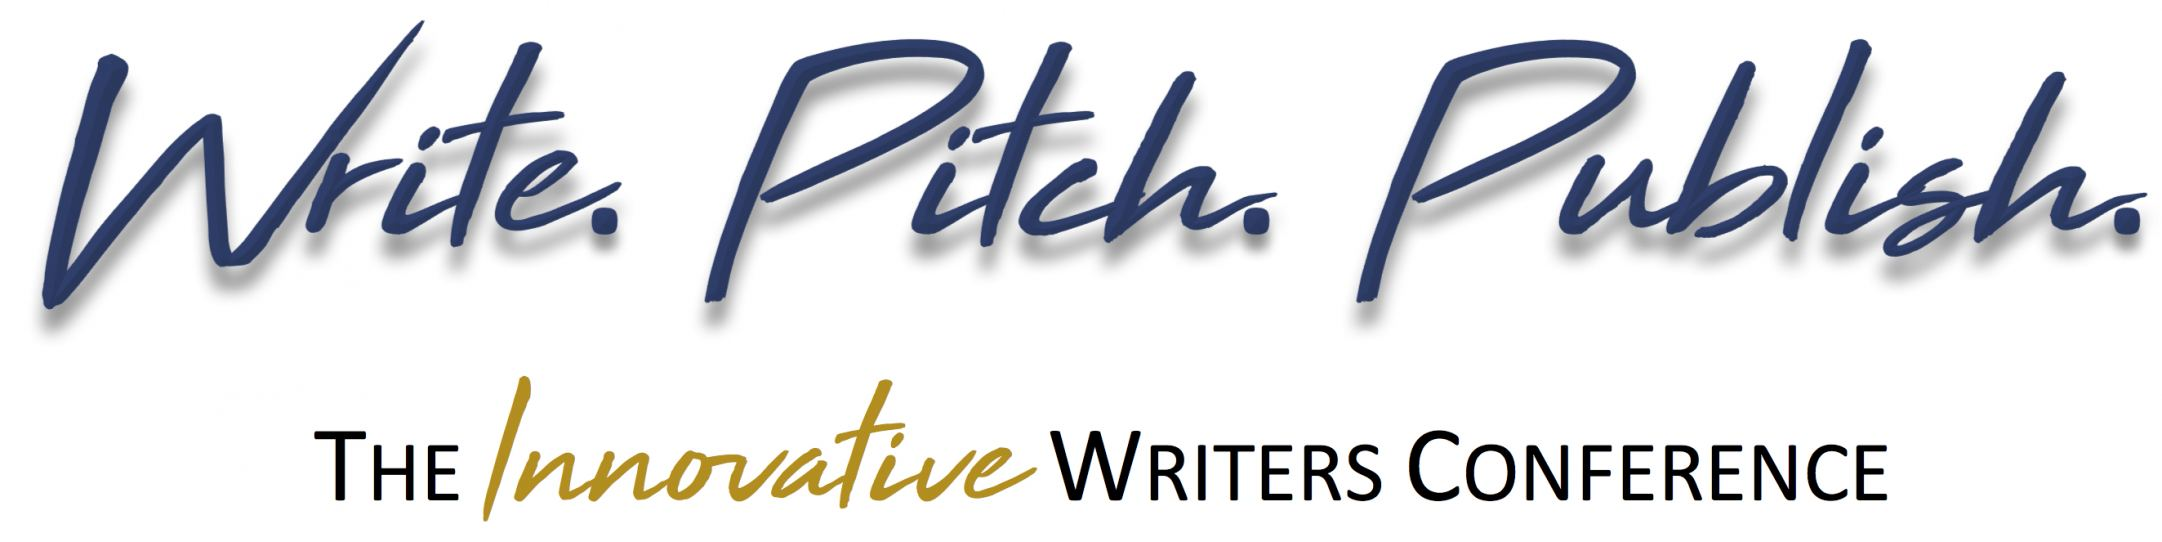 writepitchpublish Logo